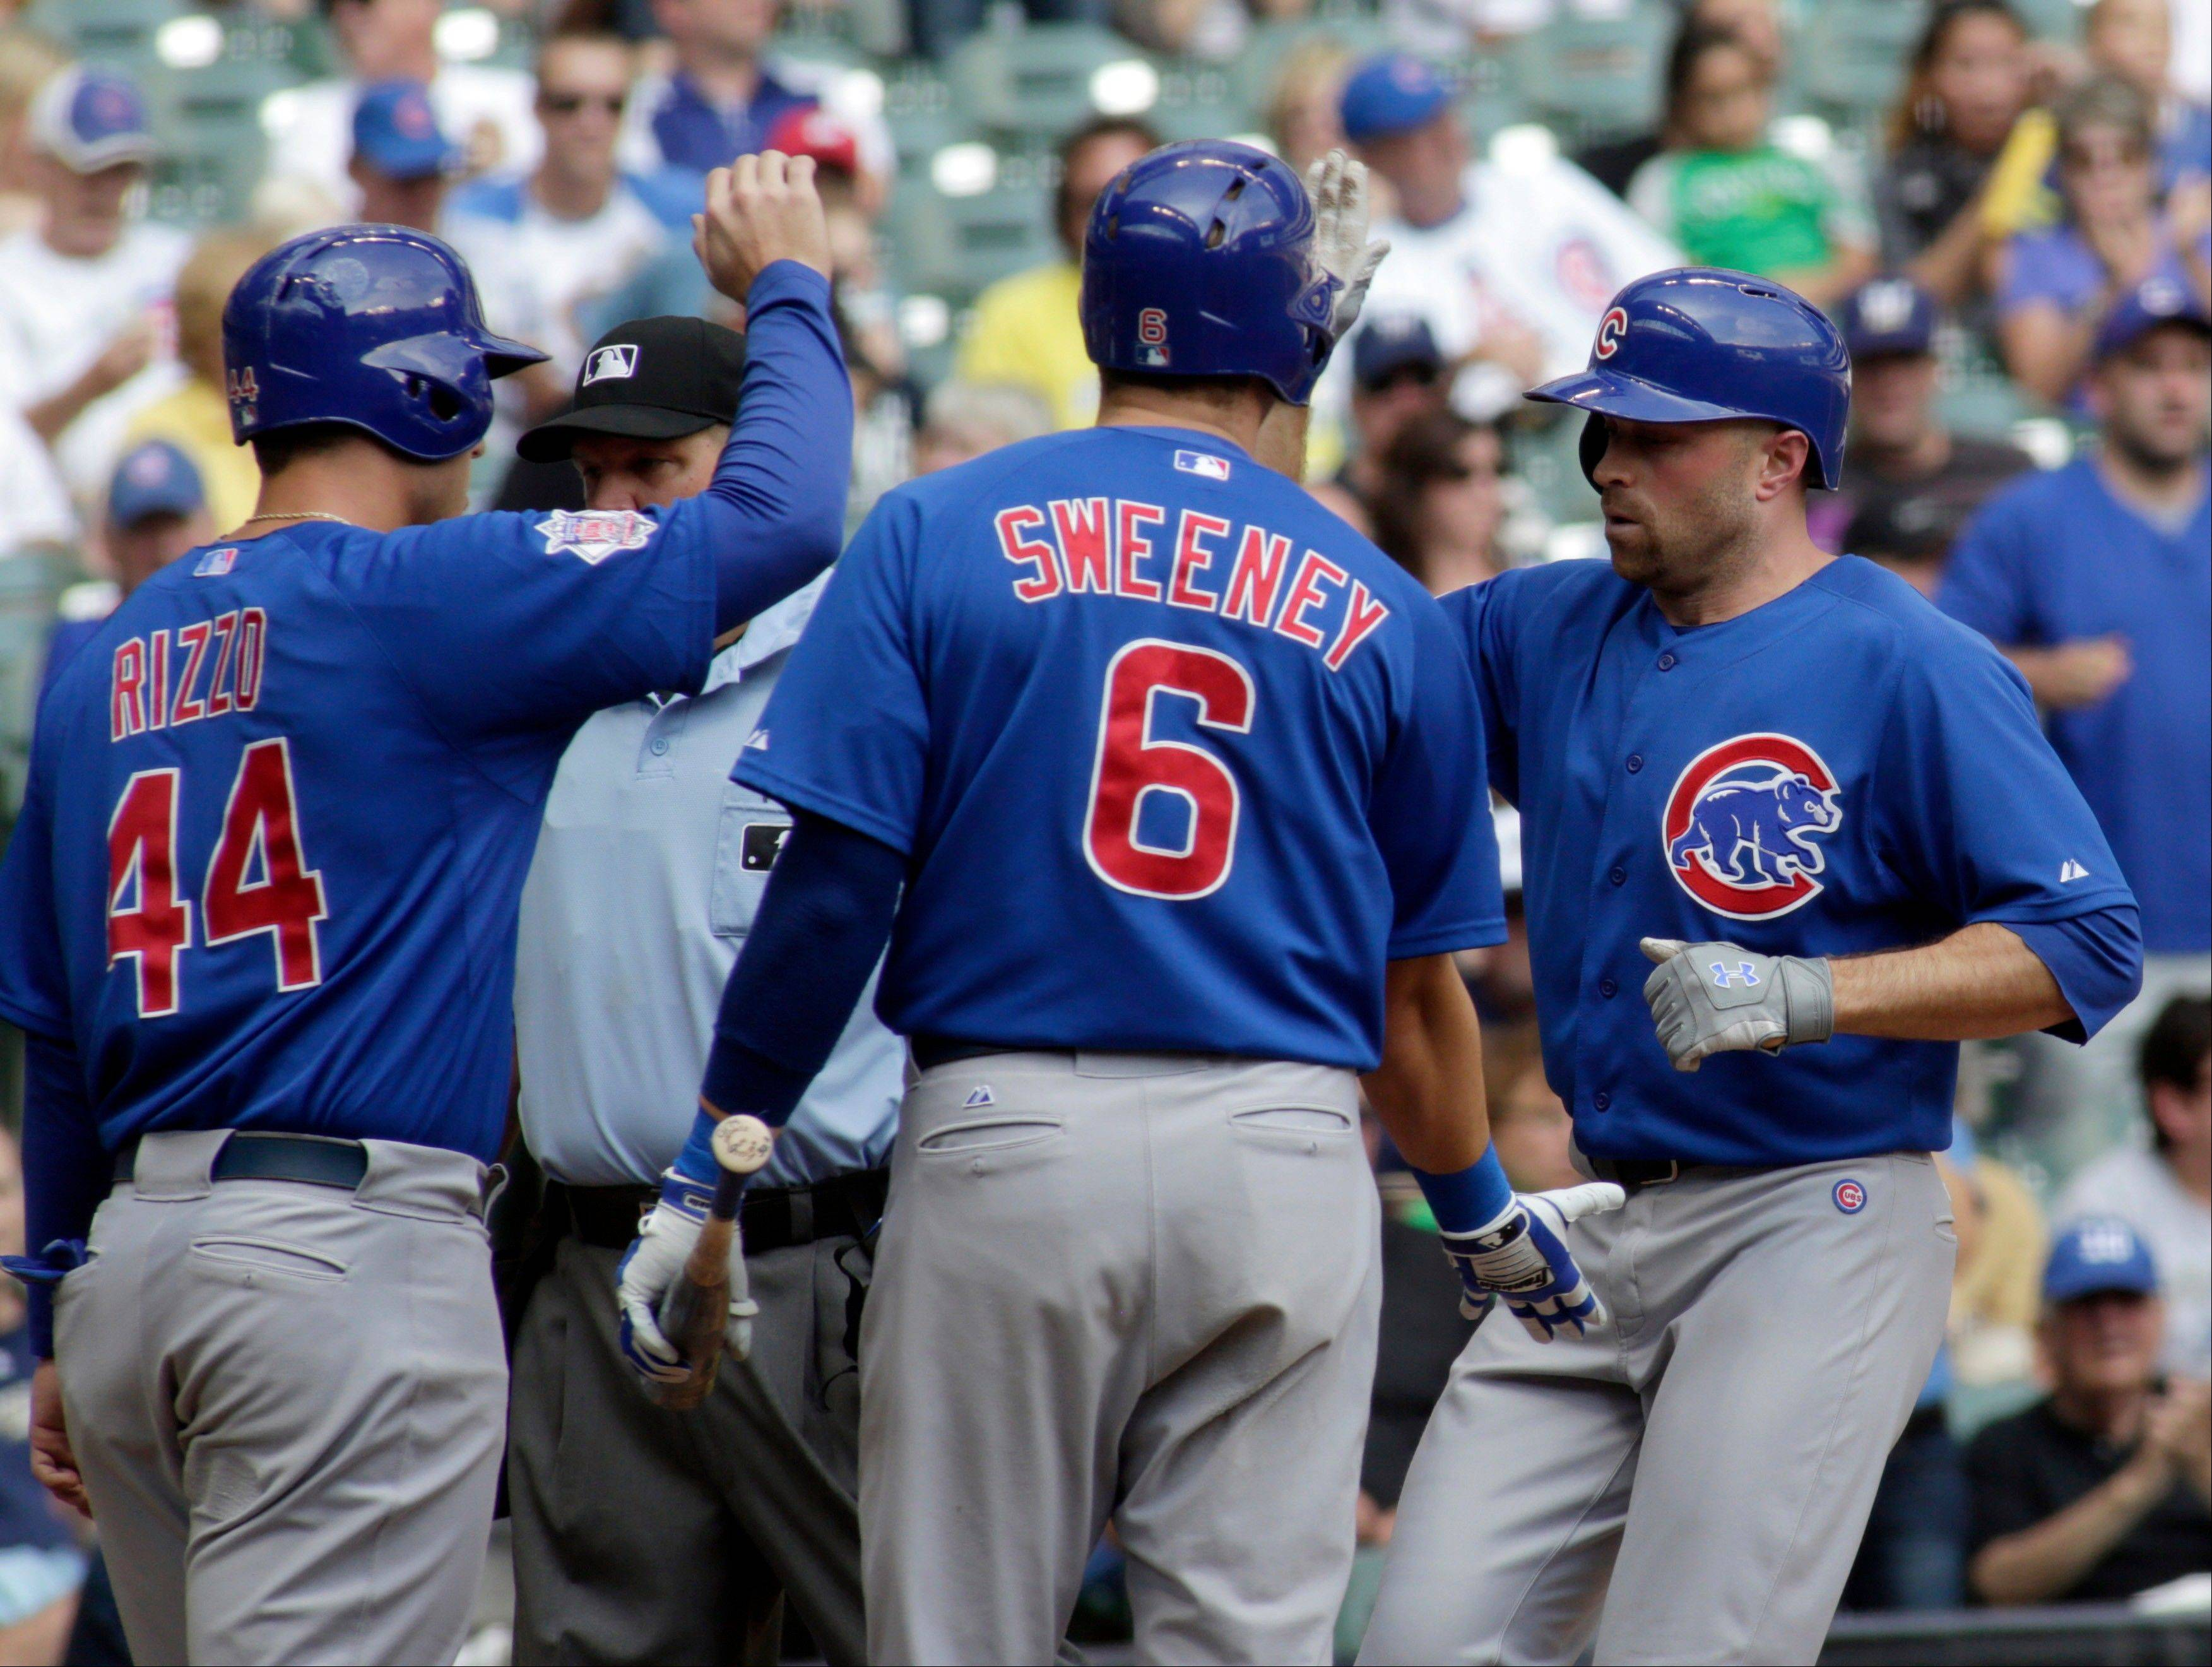 Chicago Cubs' Nate Schierholtz, right, is congratulated by teammates Anthony Rizzo, left, and Ryan Sweeney, center, after hitting a two-run home run against the Milwaukee Brewers during the third inning of a baseball game Thursday, Sept. 19, 2013, in Milwaukee.